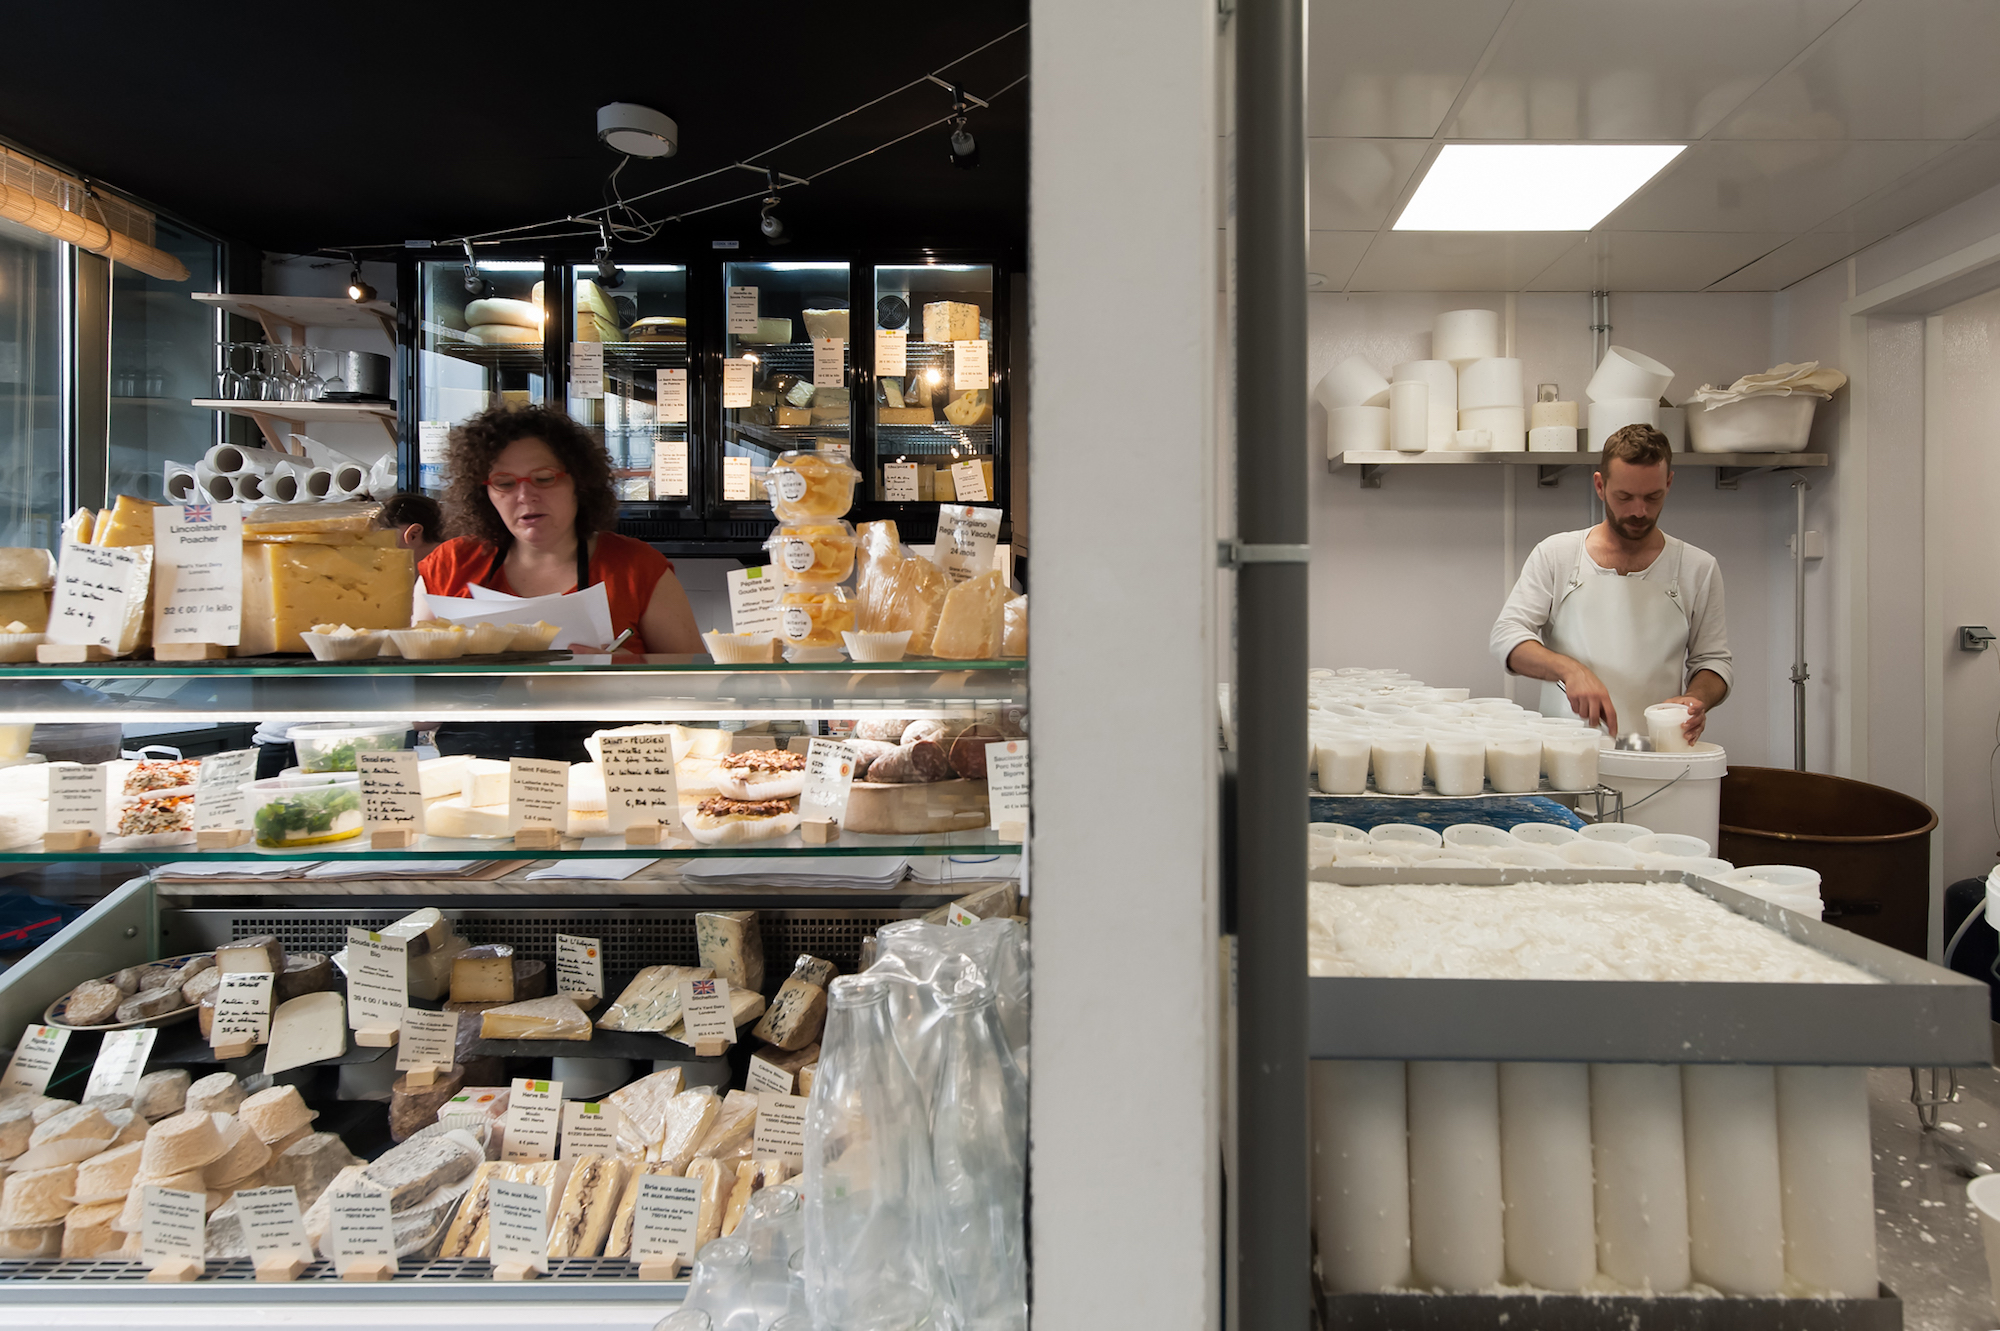 HiP Paris Blog discovers Paris' first cheese dairy La Laiterie de Paris with its wonderful selection of cheeses behind the glass counter (left). Pierre Coulon, the cheese maker in his workshop (right).